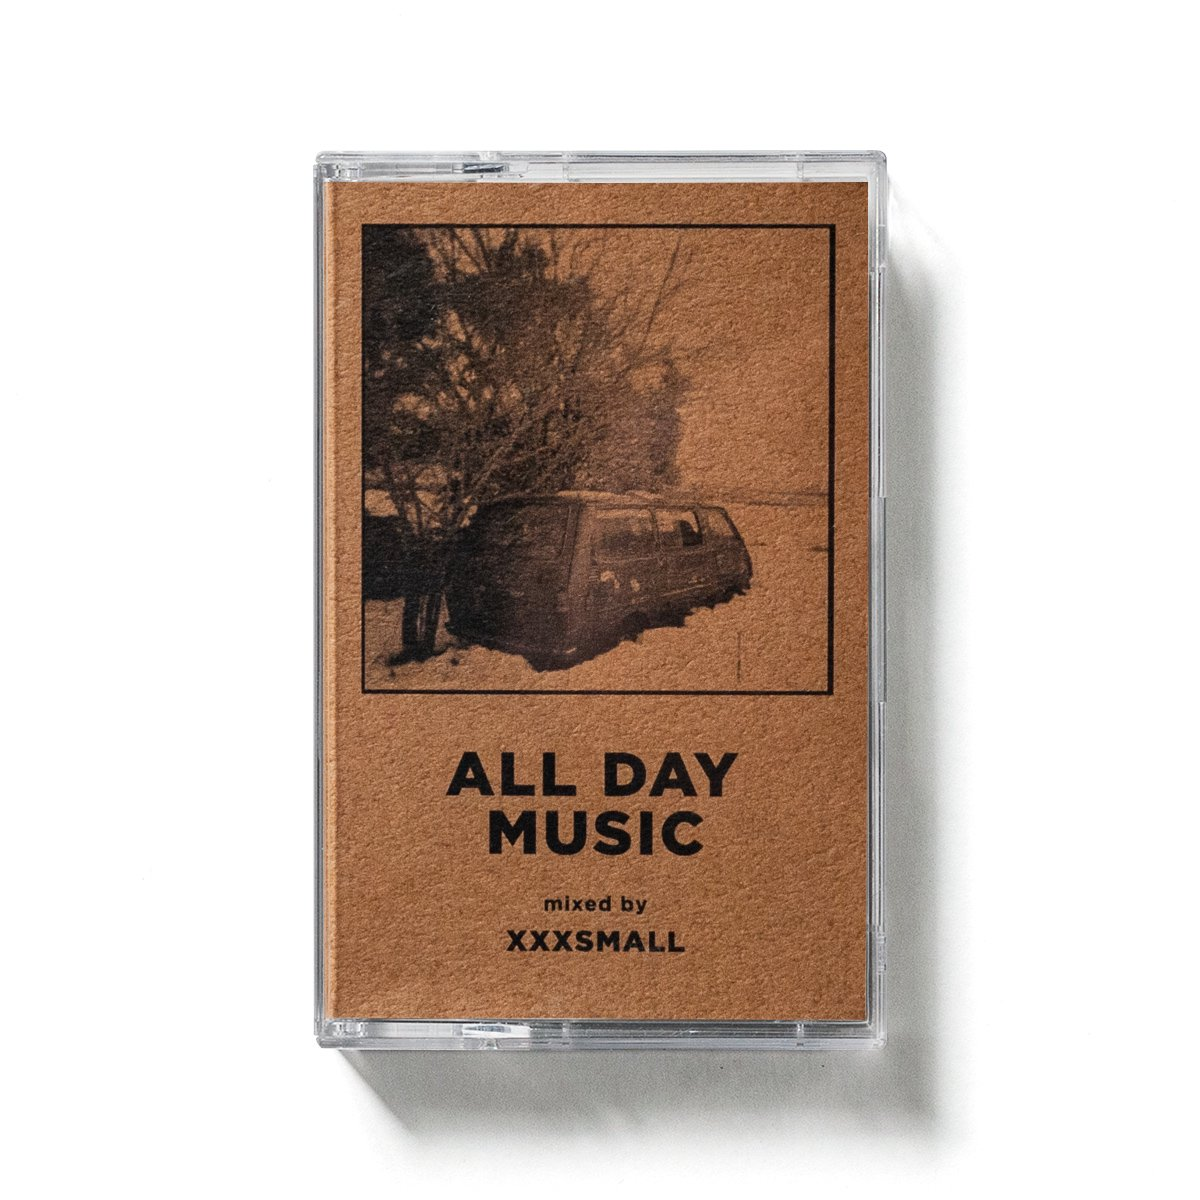 ALL DAY MUSIC #14 - Mixed by XXXSMALL<img class='new_mark_img2' src='https://img.shop-pro.jp/img/new/icons5.gif' style='border:none;display:inline;margin:0px;padding:0px;width:auto;' />